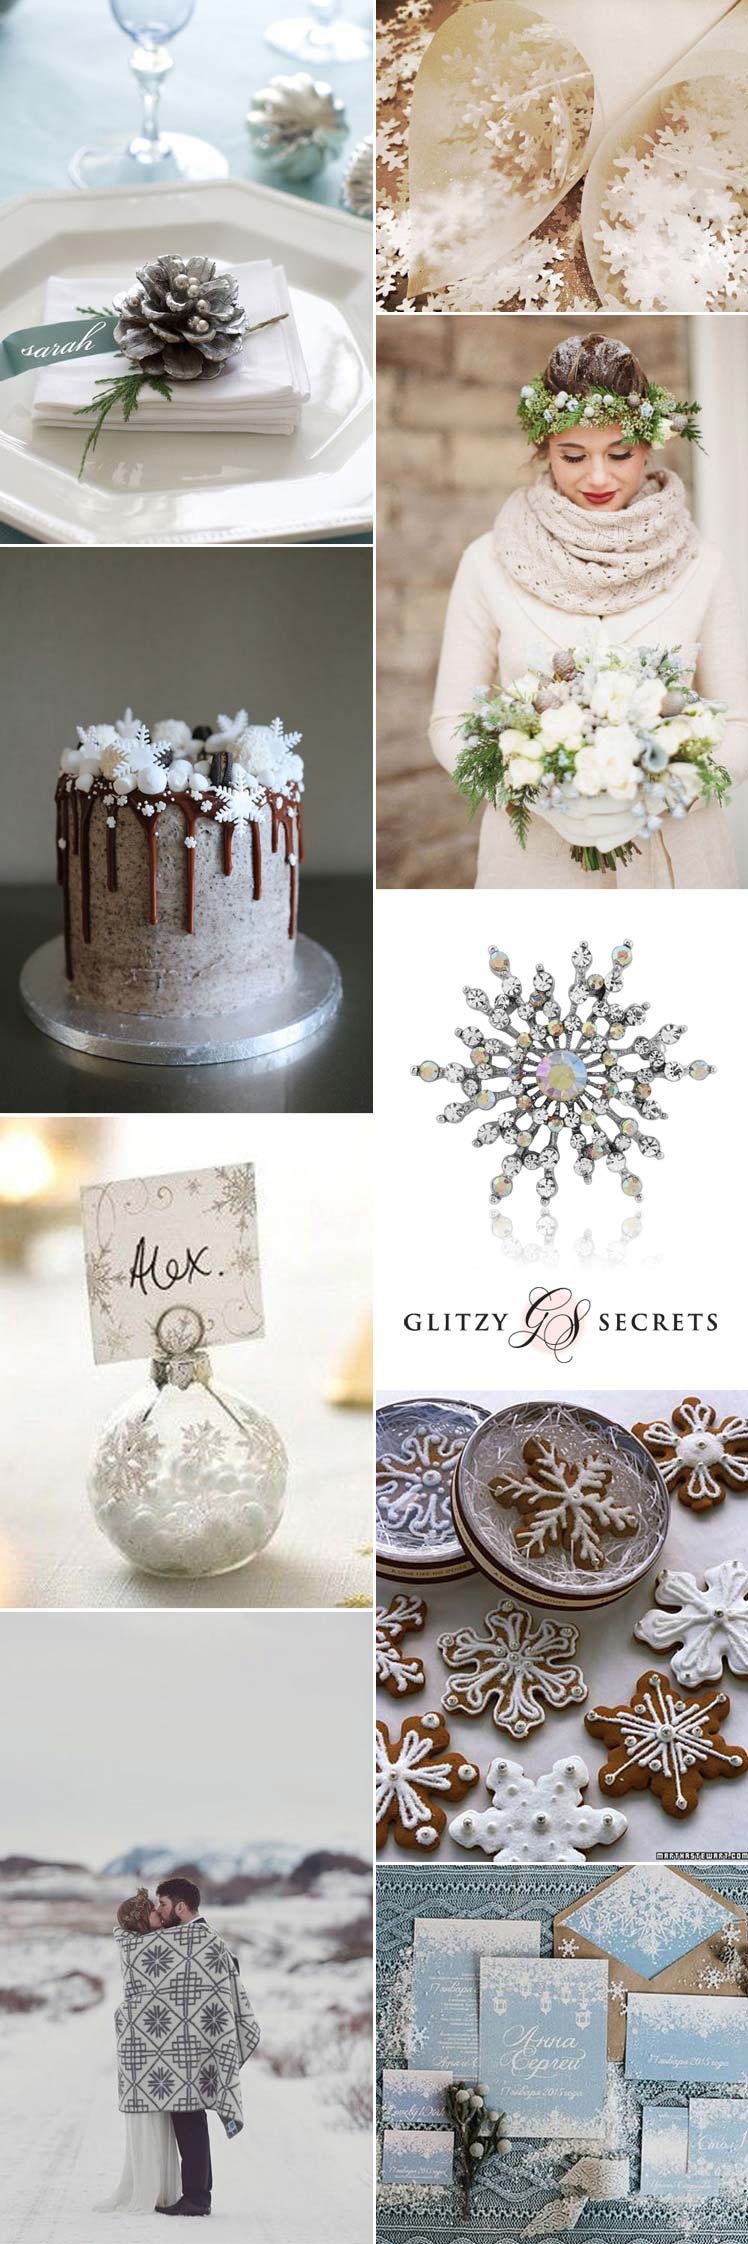 Snowflake wedding inspiration